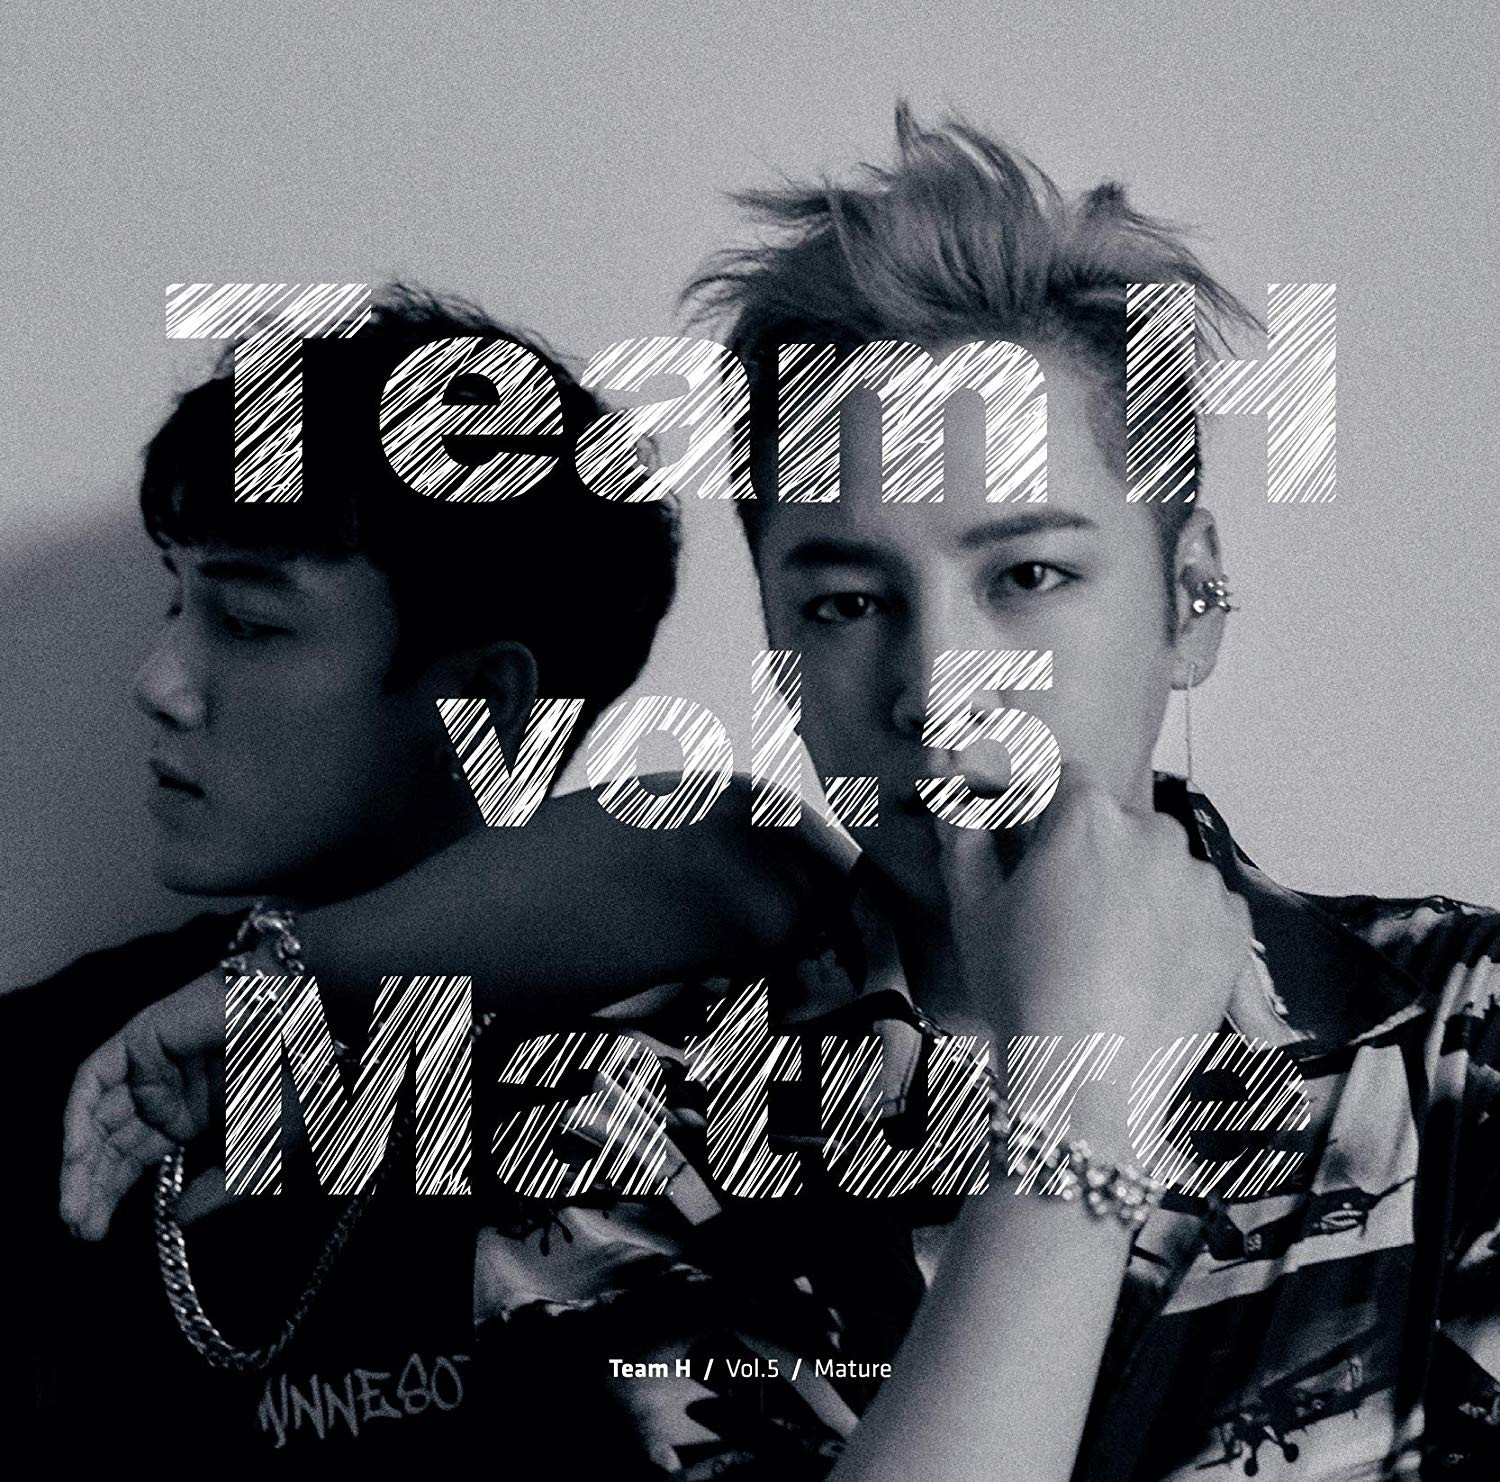 TEAM H – Mature [AAC VBR / WEB] [2018.09.05]